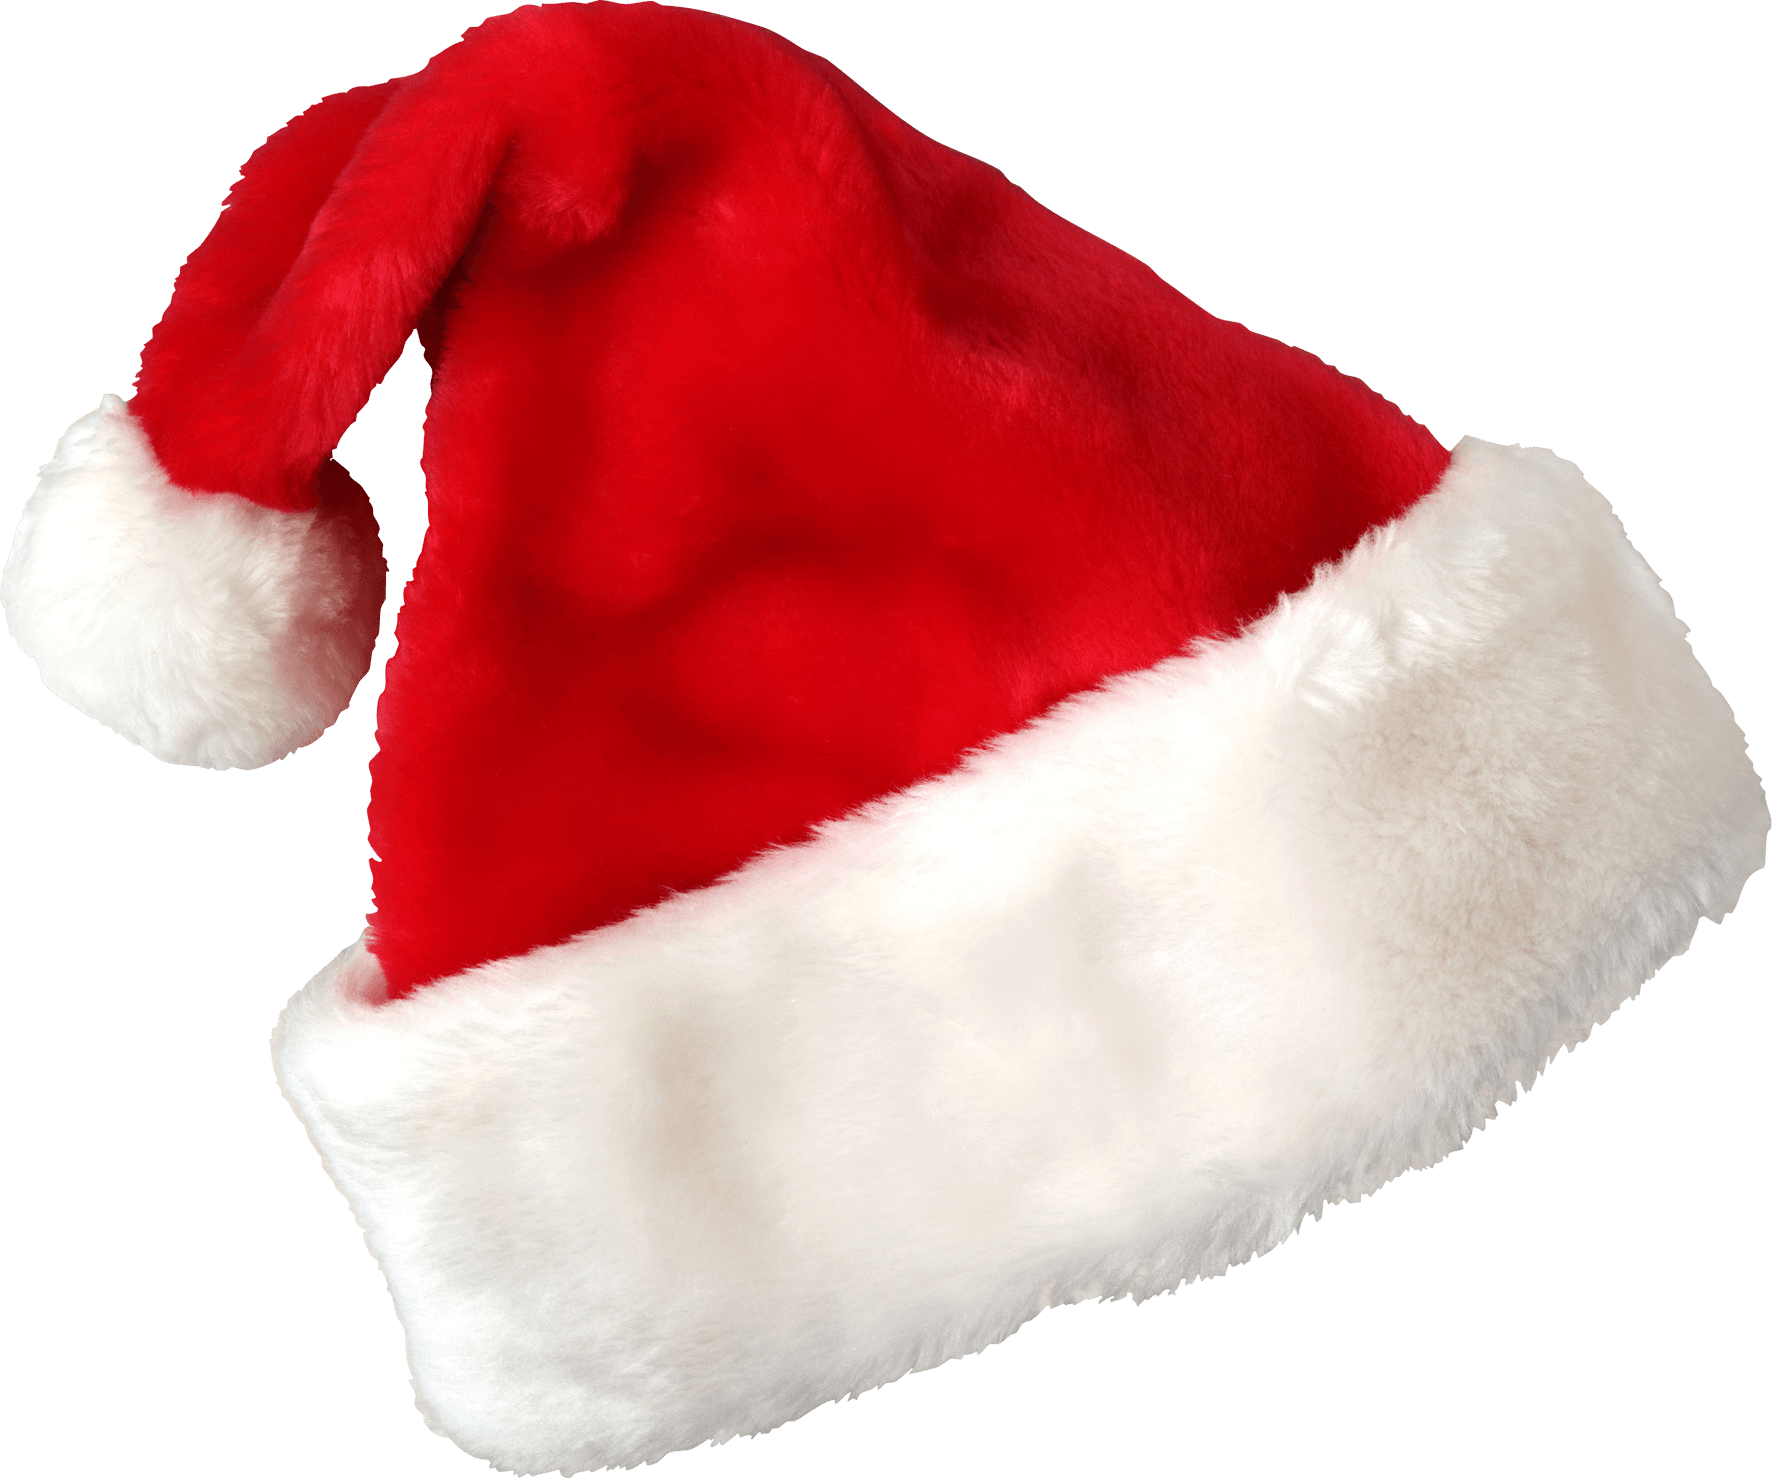 Christmas Hat Transparent Clipart.Christmas Hat Transparent Png Clipart Free Download Ywd